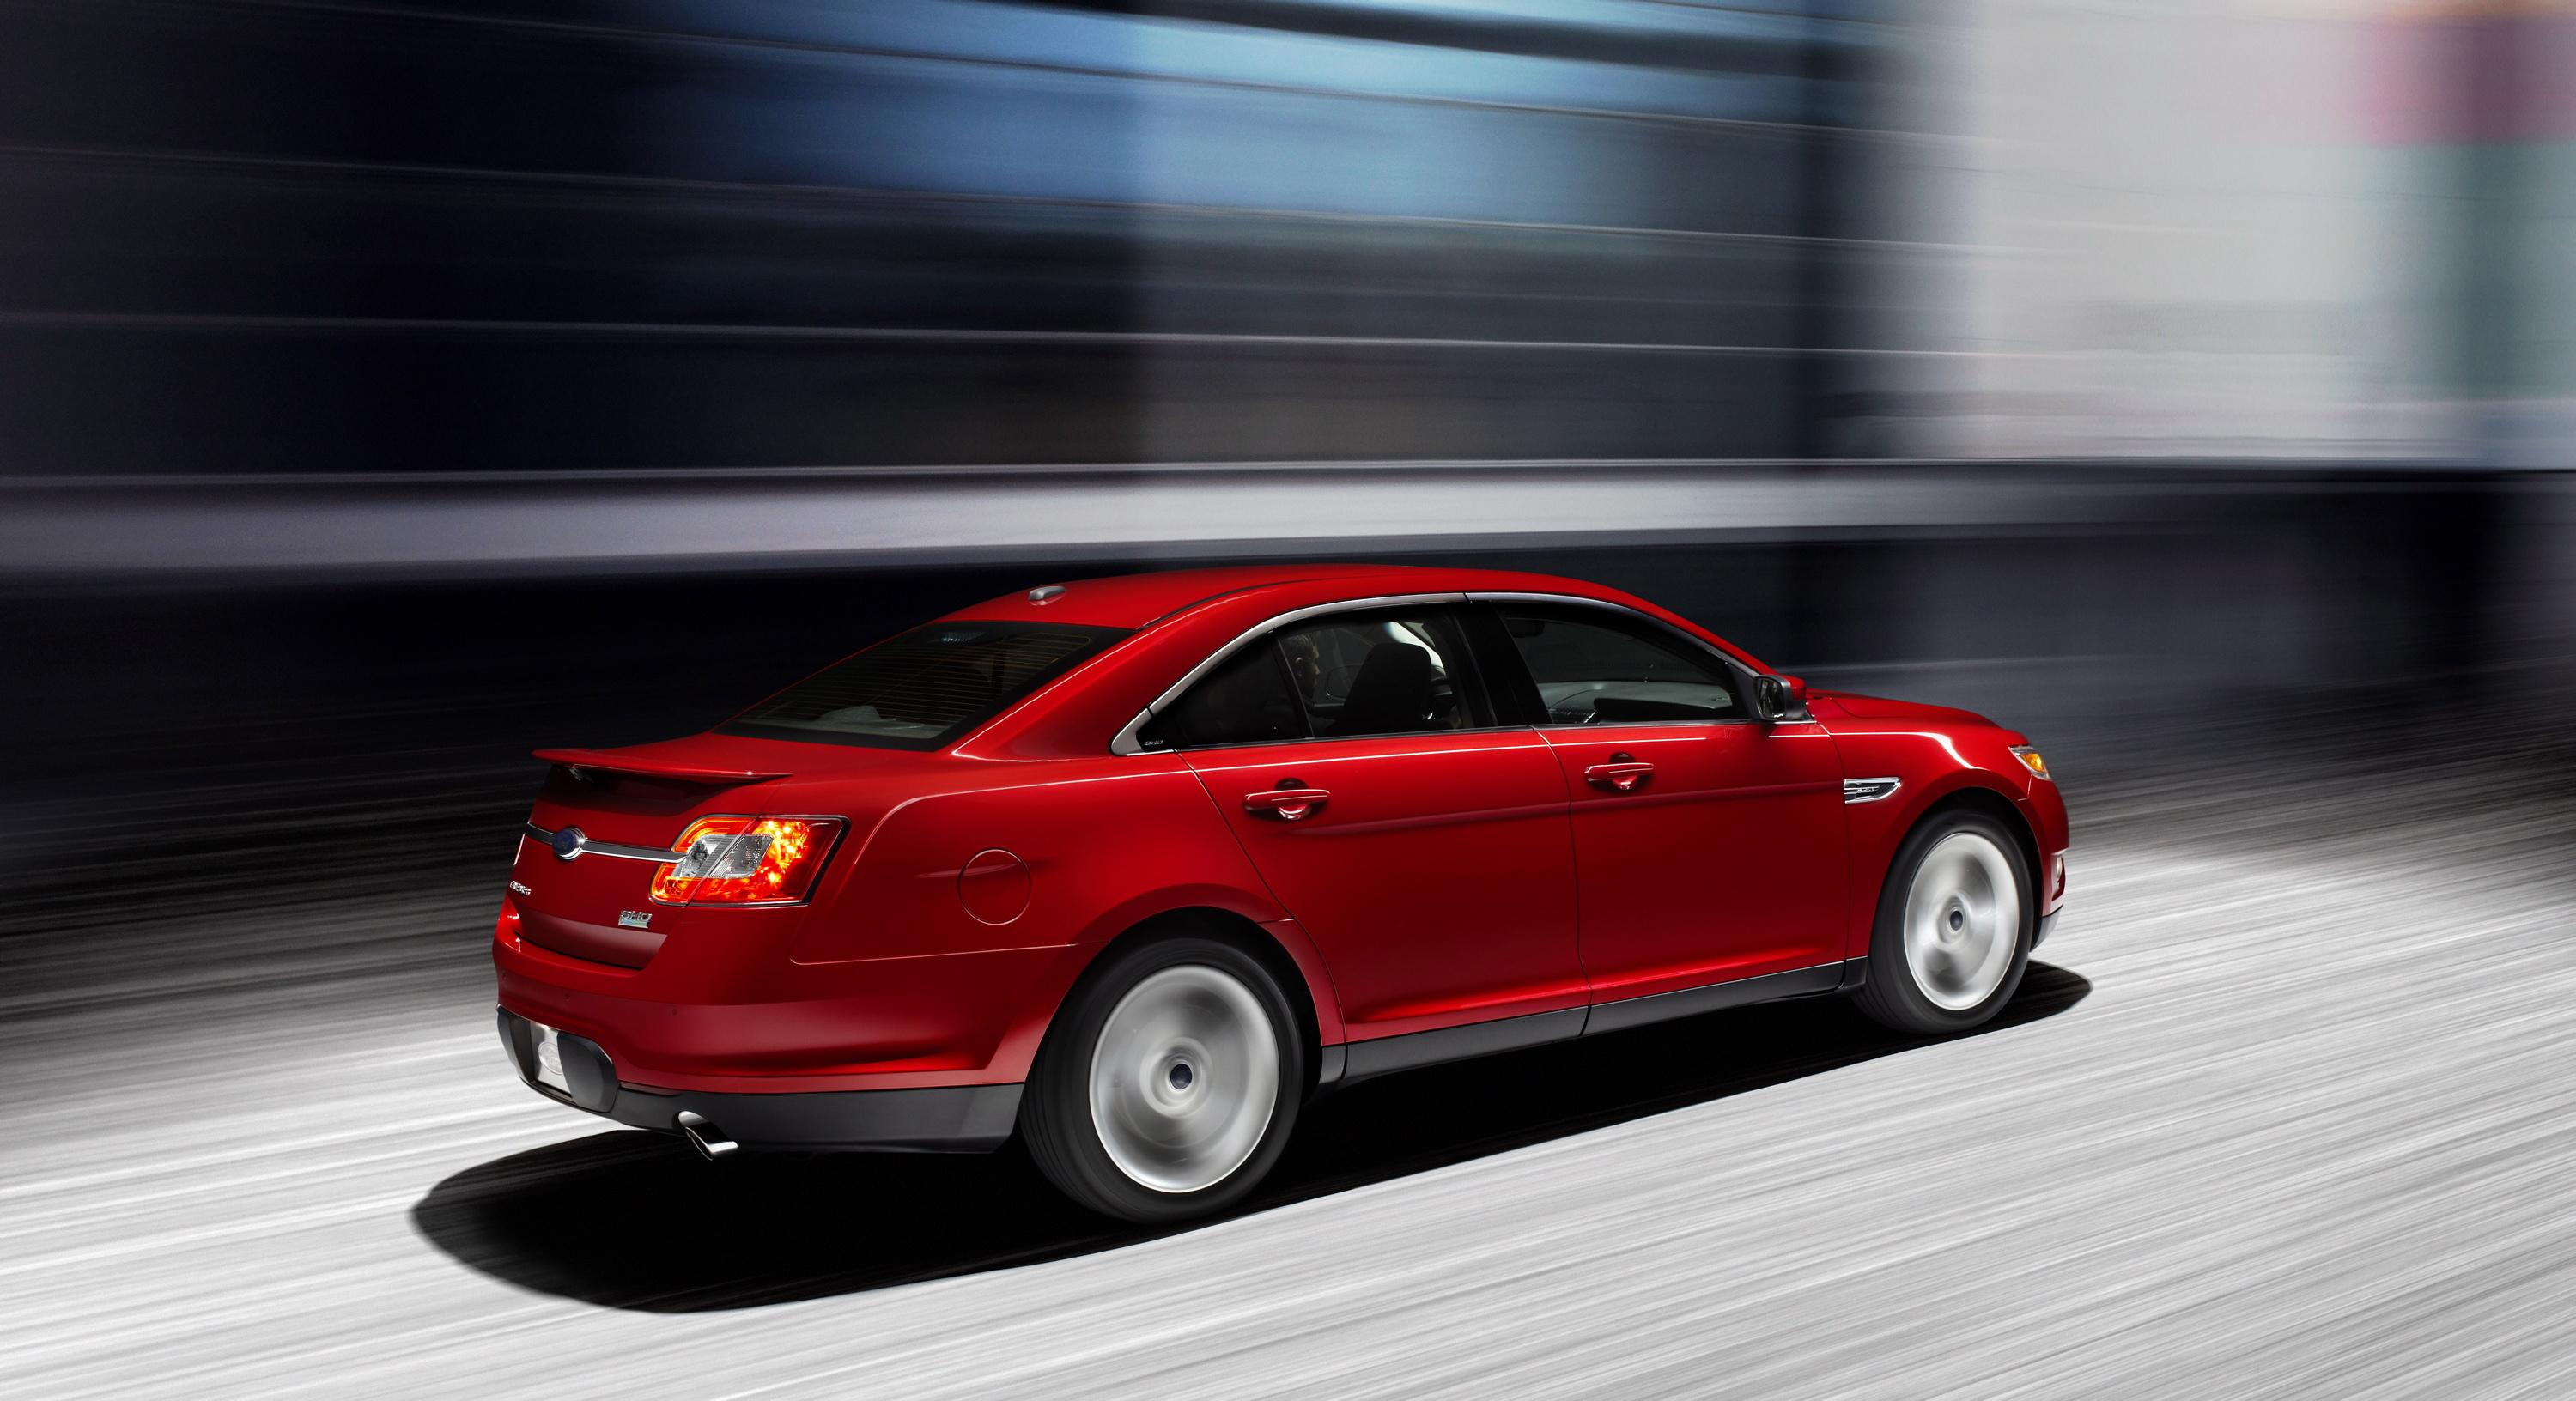 2010 Ford Taurus SHO | Top Speed. »